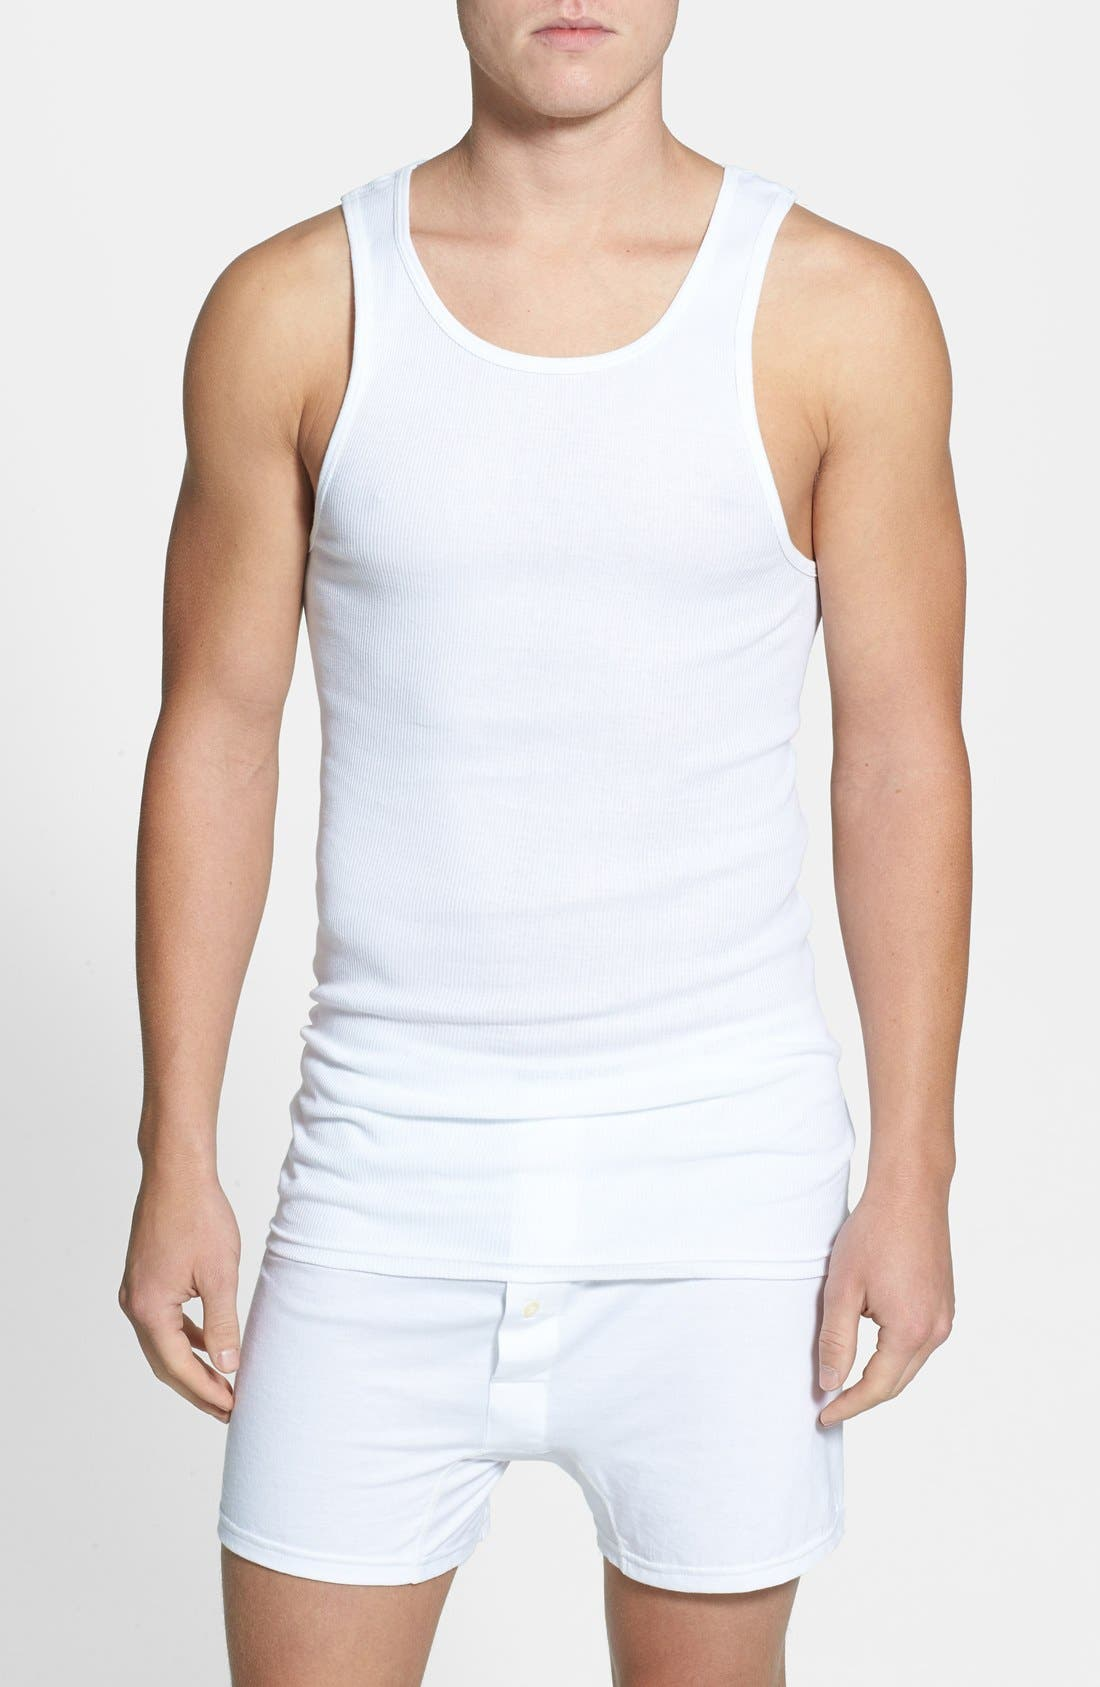 Nordstrom Men's Shop 4-Pack Supima® Cotton Athletic Tanks